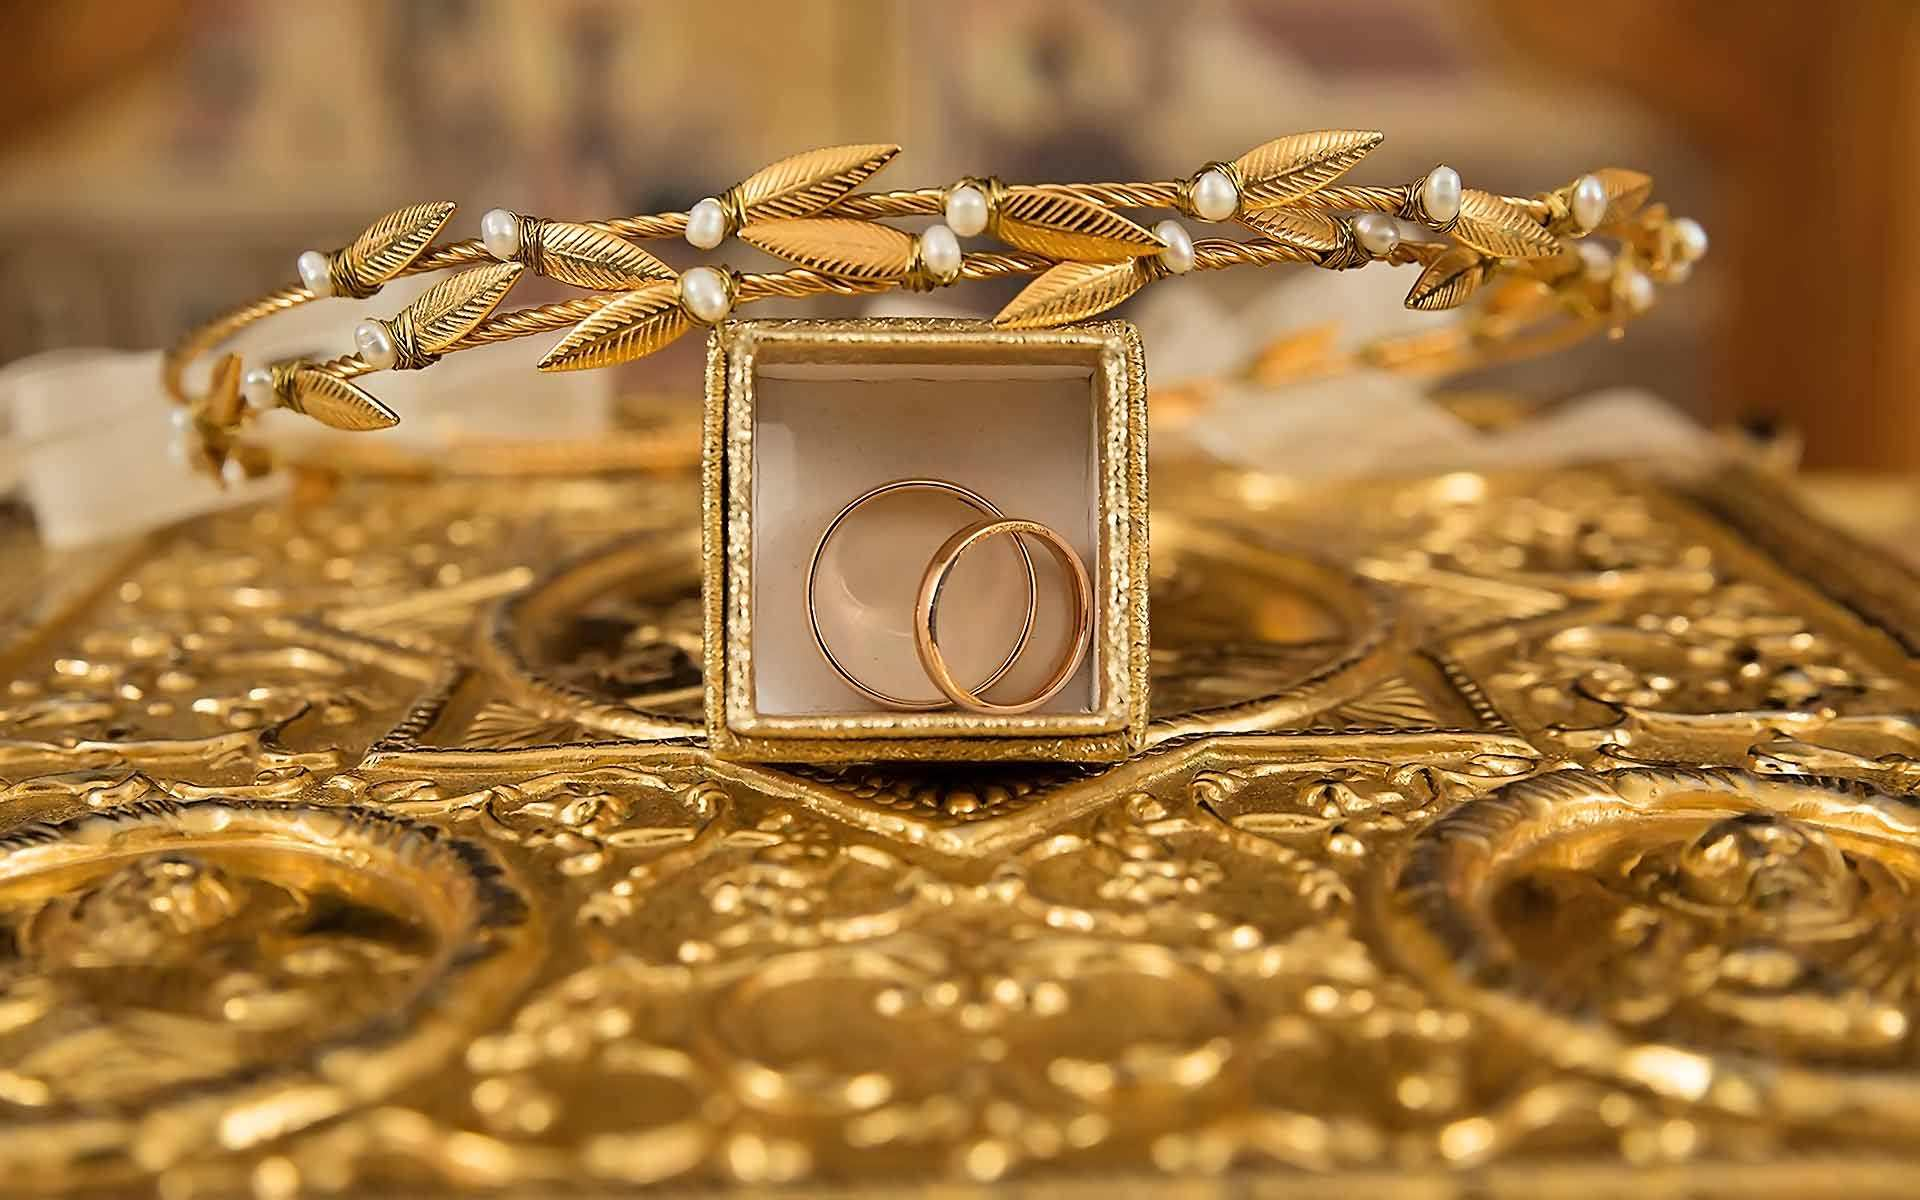 Greek-ancient-gold-Crowns-and-the-rings-of-the-couple-in-the-Holy-Bible